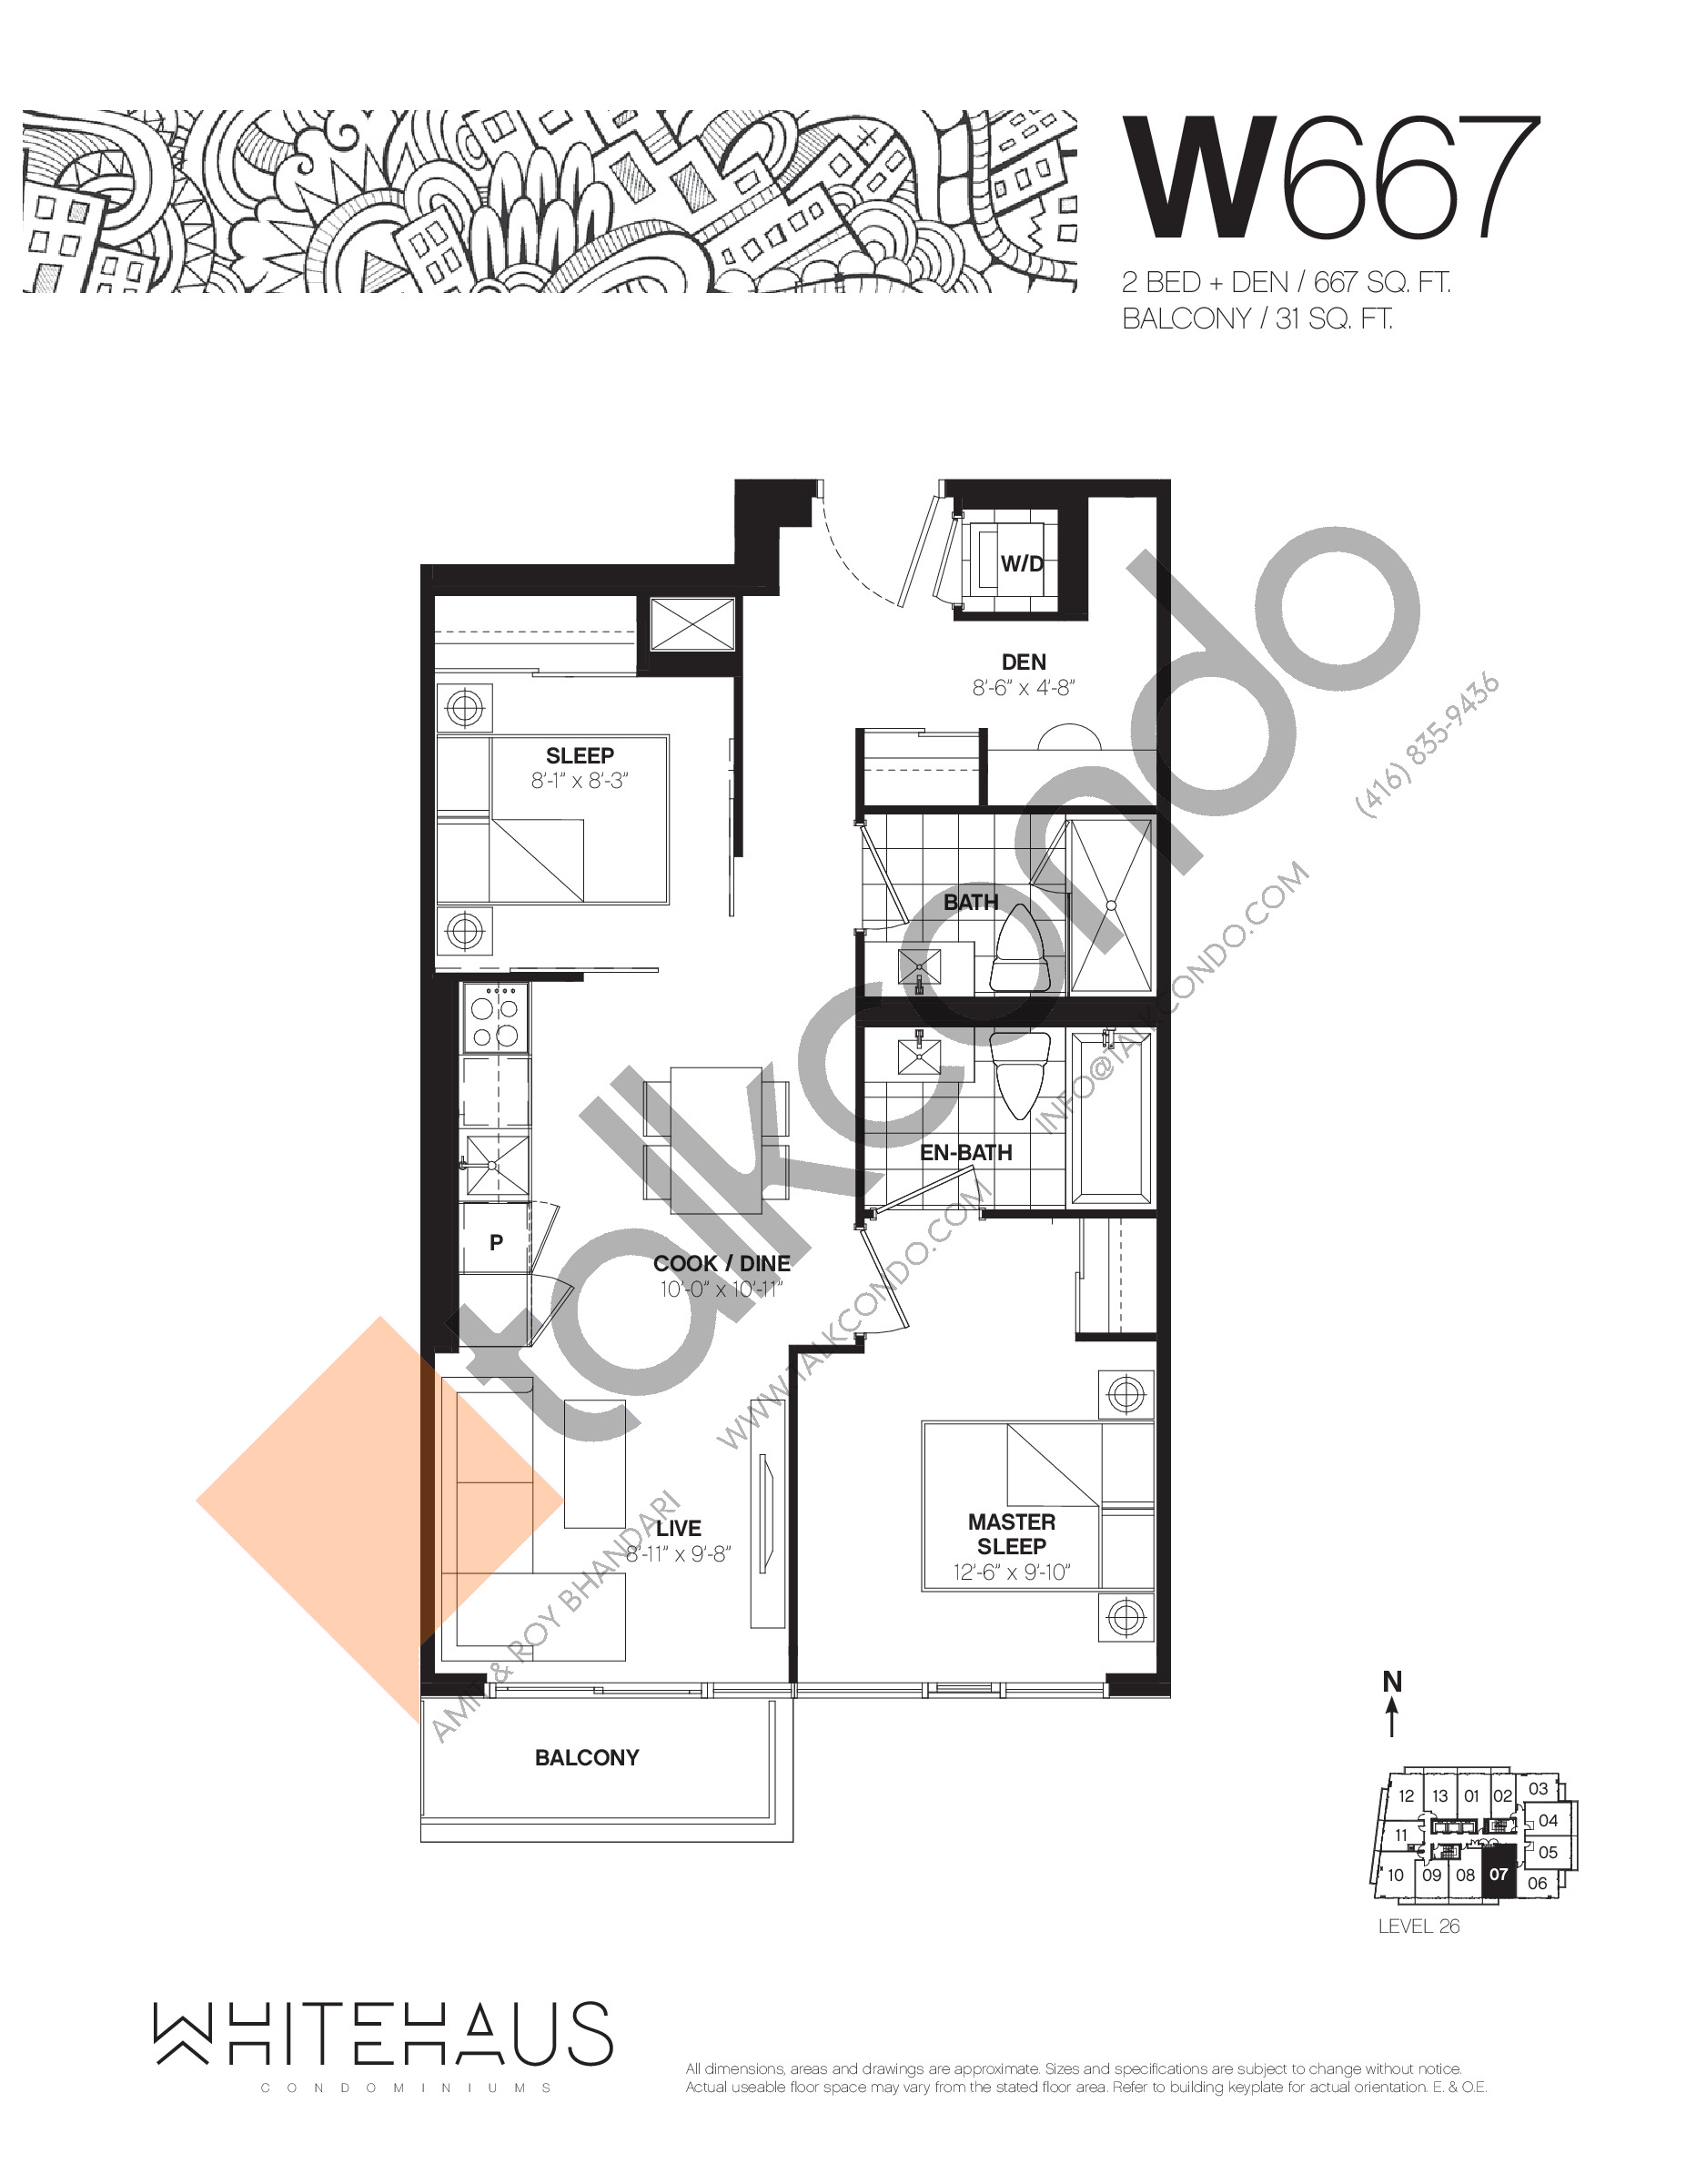 W667 Floor Plan at Whitehaus Condos - 667 sq.ft